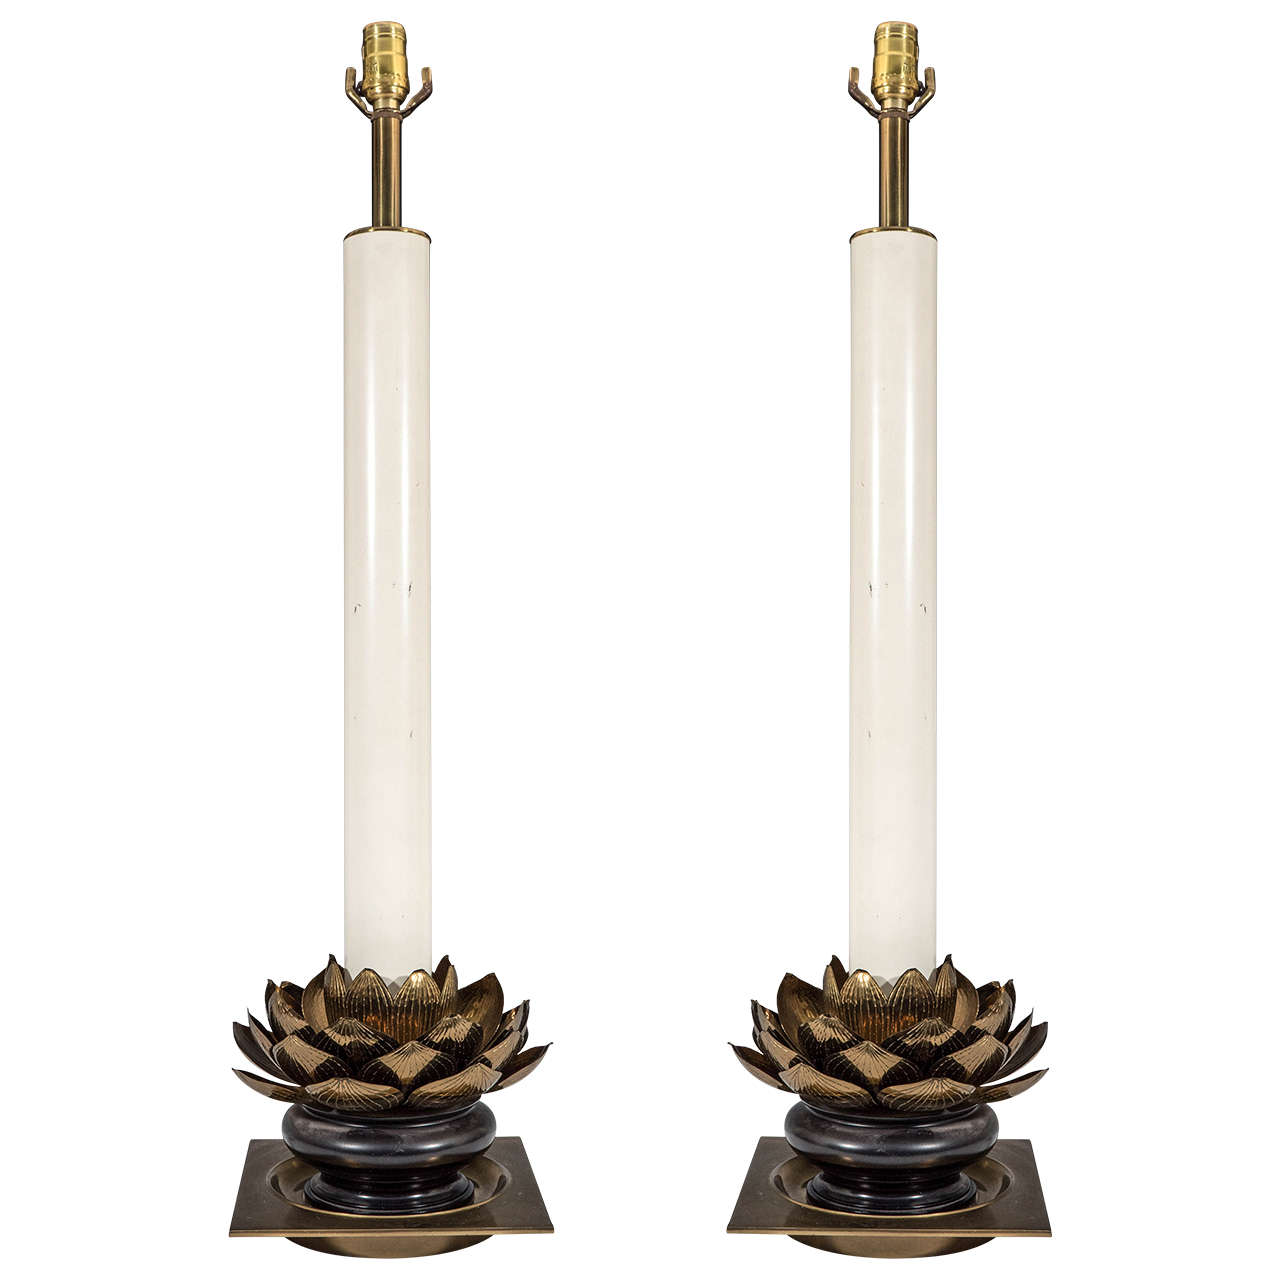 A Midcentury Pair of Lotus Base Lamps in the Style of Tommaso Barbi